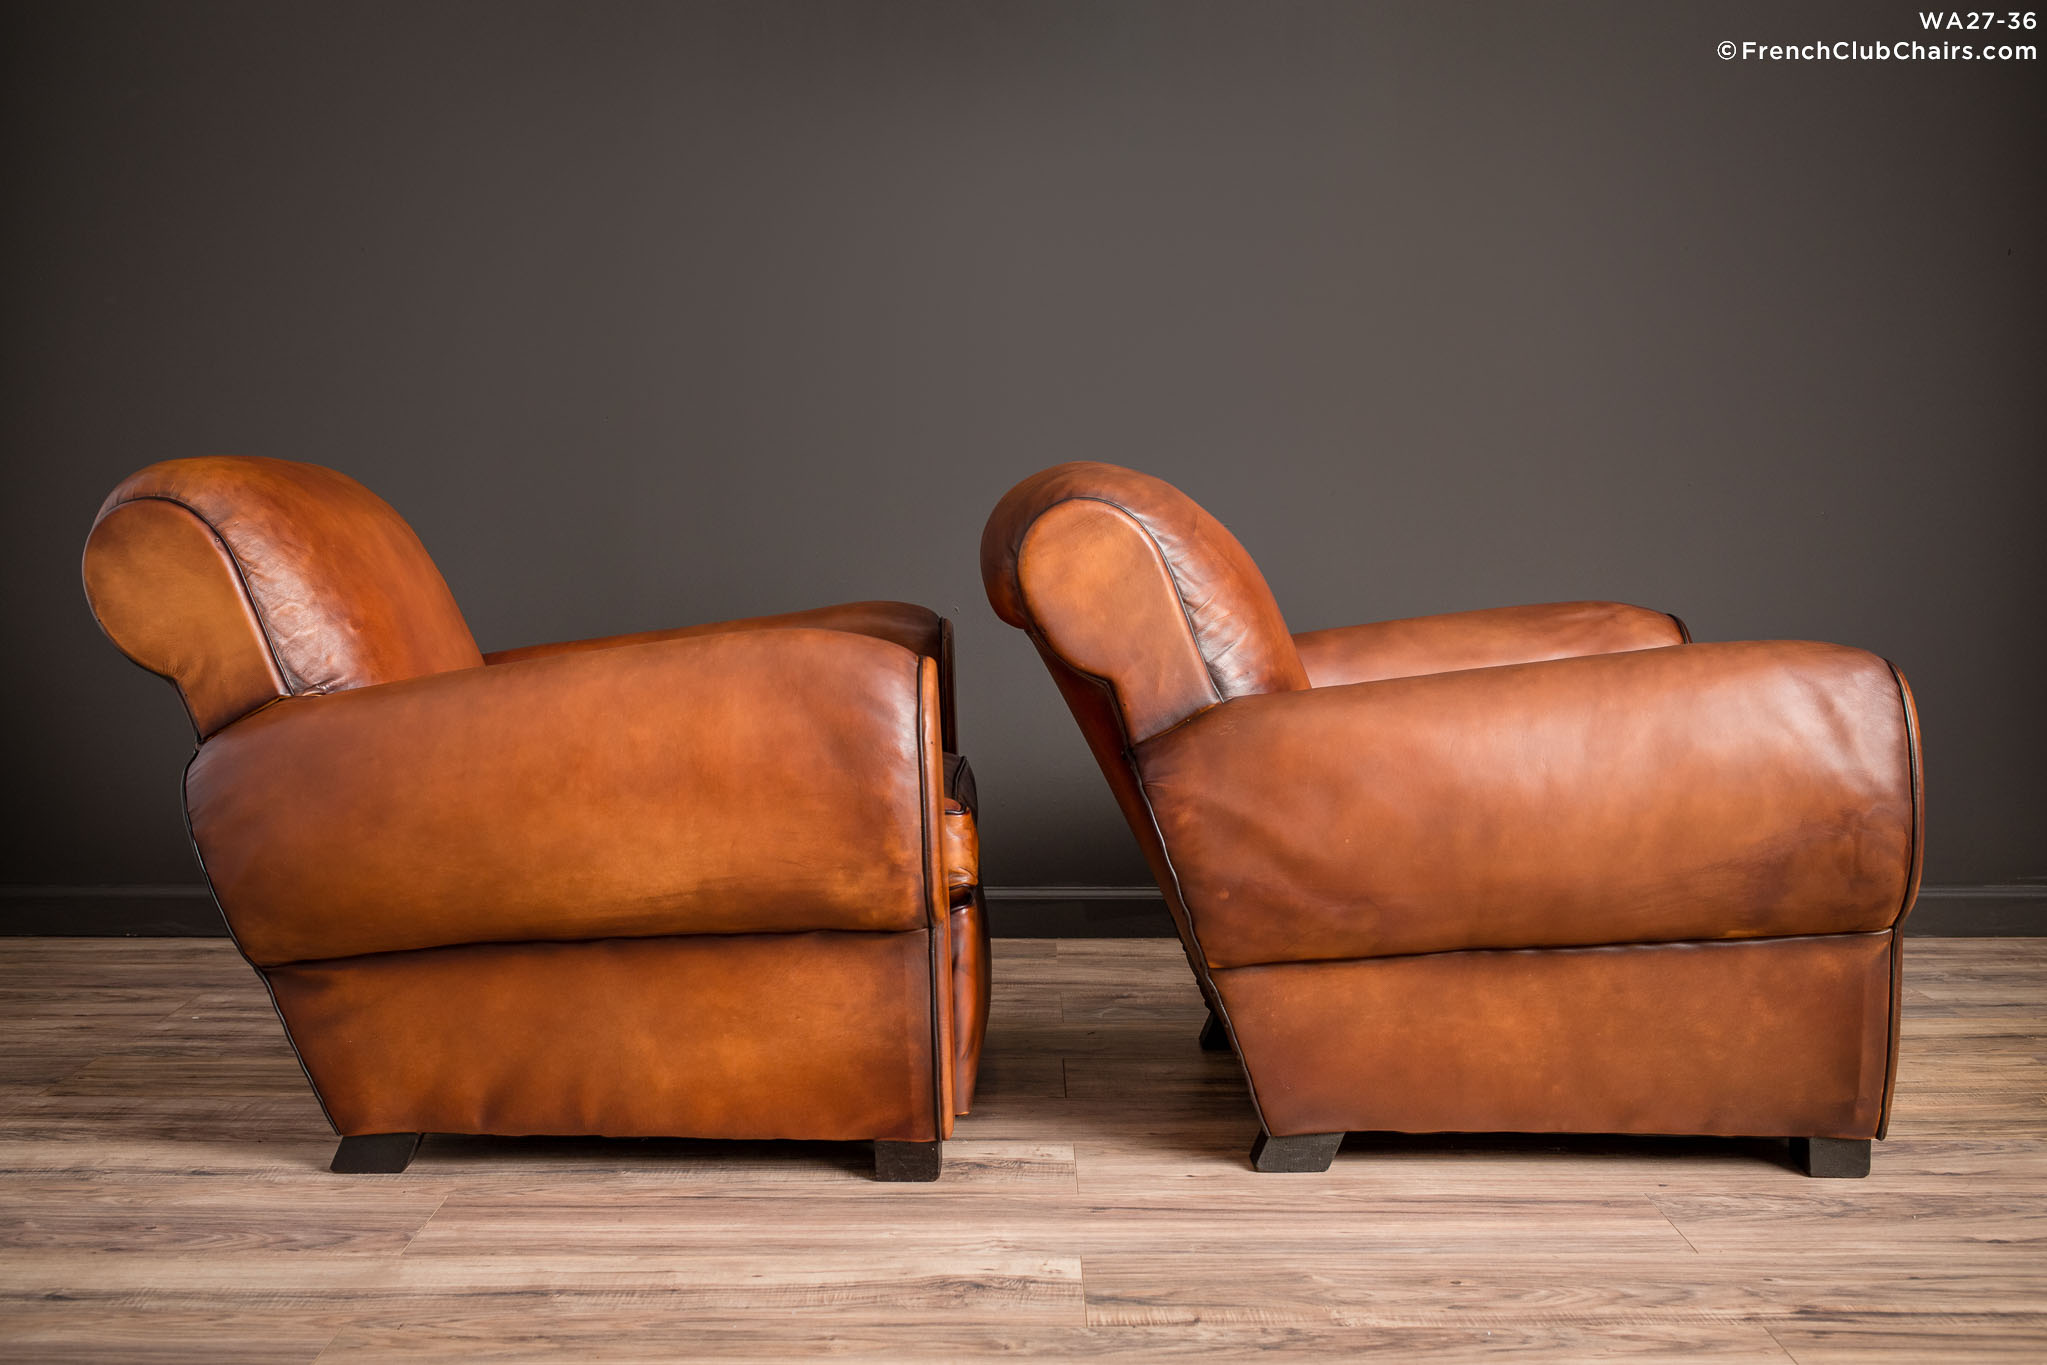 WA_27-36_Liseaux_Giant_Dark_Rollback_Pair_R_3RT-v01-williams-antiks-leather-french-club-chair-wa_fcccom